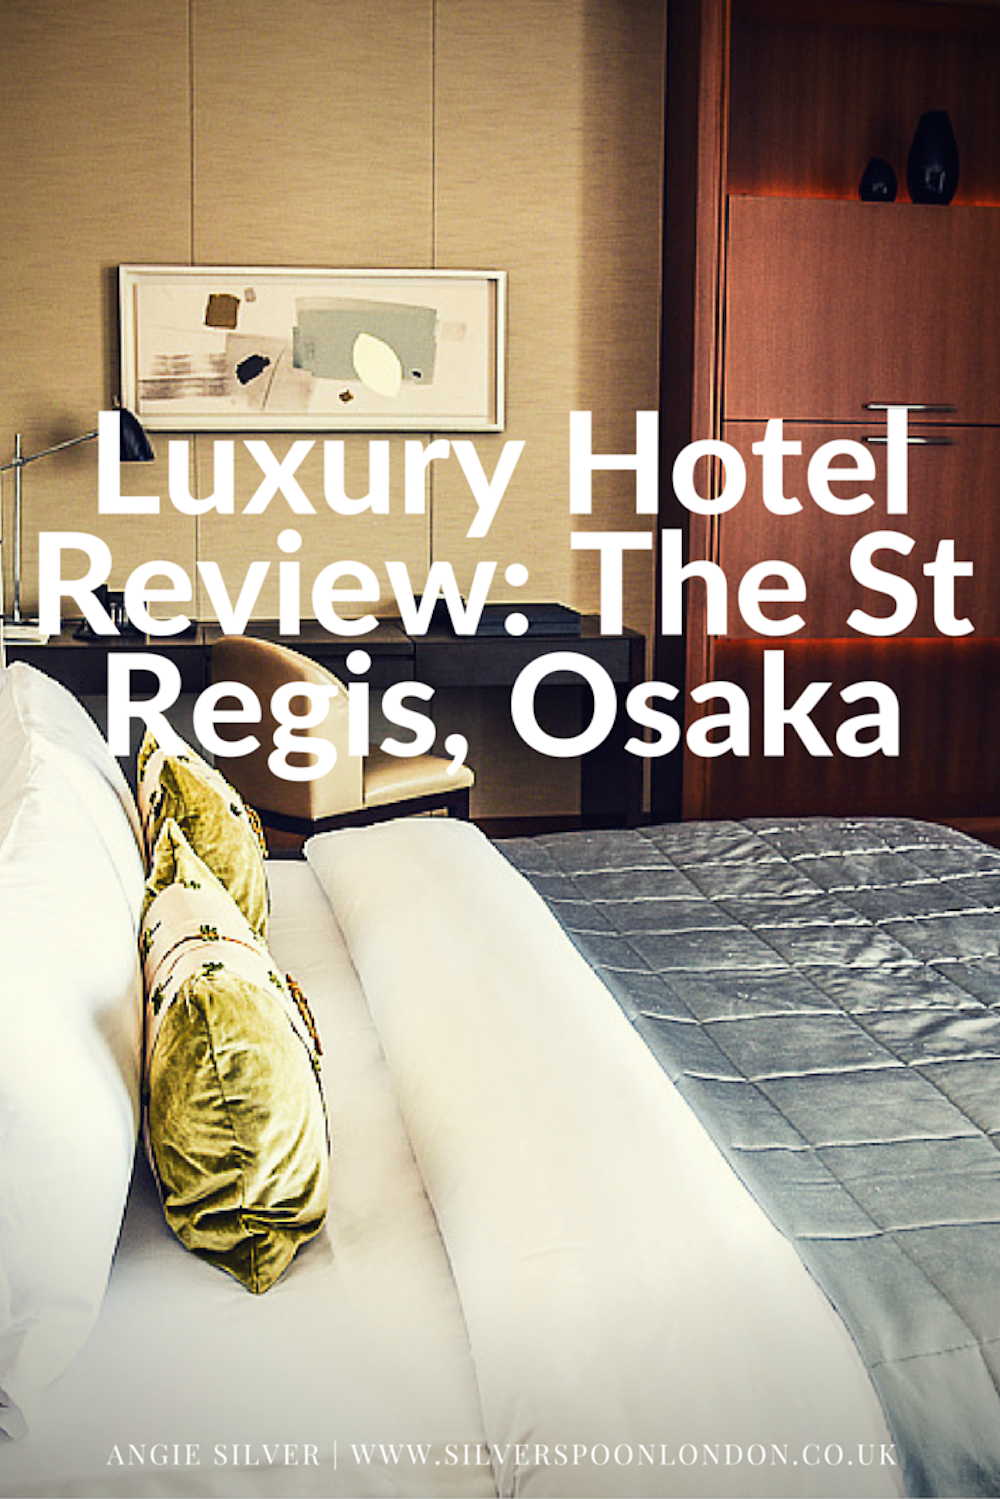 Luxury Hotel Review: The St Regis Osaka